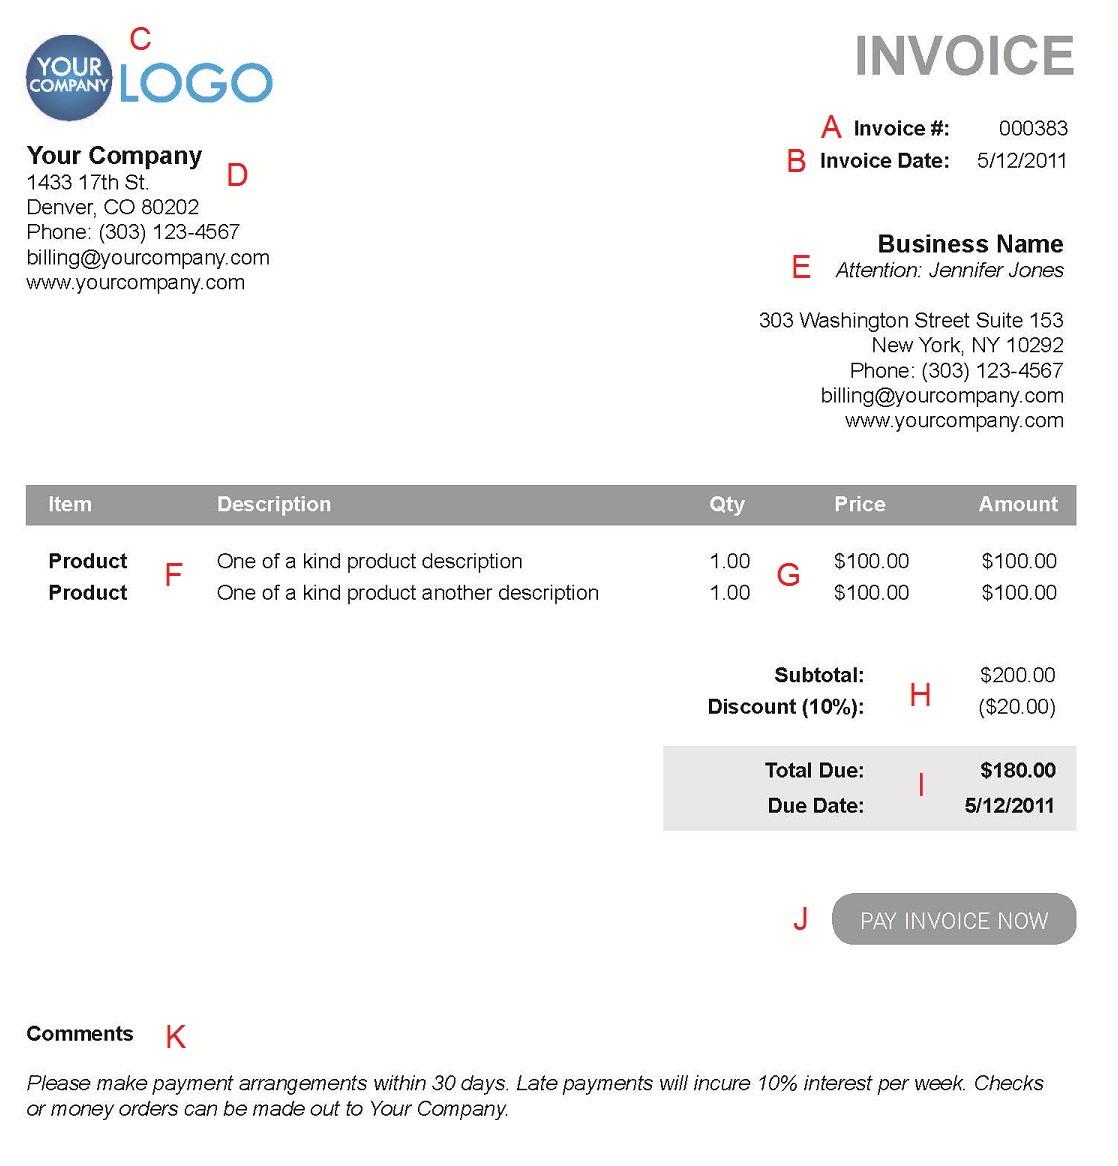 Ultrablogus  Unusual The  Different Sections Of An Electronic Payment Invoice With Engaging A  With Amazing How To Invoice Also Paid Invoice In Addition Past Due Invoice Letter And Vendor Invoice As Well As Honda Crv Invoice Price Additionally Outstanding Invoices From Paysimplecom With Ultrablogus  Engaging The  Different Sections Of An Electronic Payment Invoice With Amazing A  And Unusual How To Invoice Also Paid Invoice In Addition Past Due Invoice Letter From Paysimplecom